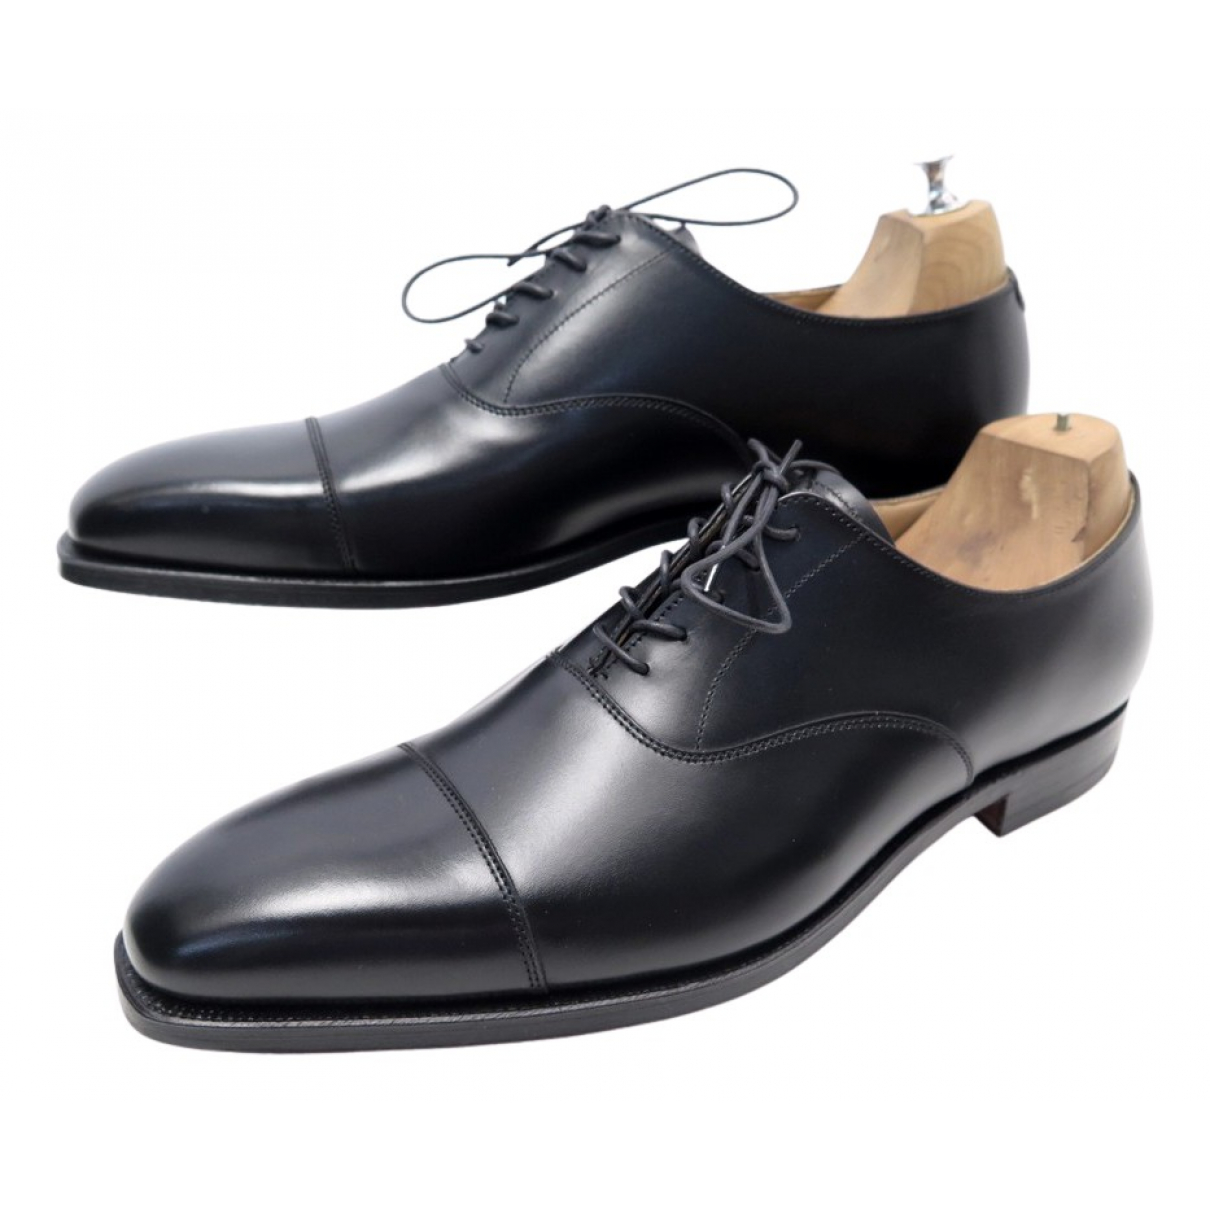 Crockett& Jones - Derbies   pour homme en cuir - noir